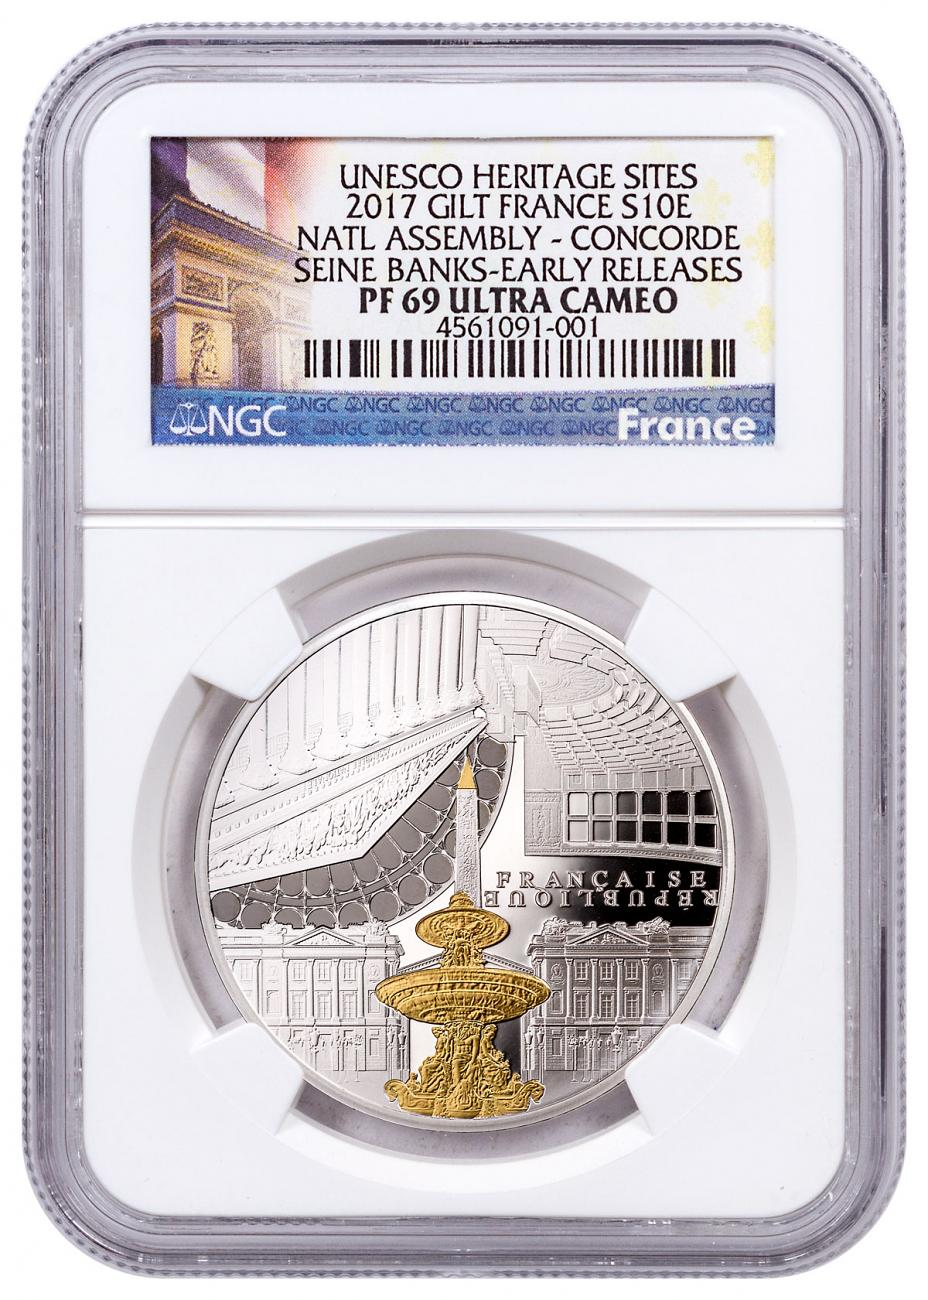 2017 France UNESCO World Heritage Site - Banks of the Seine: National Assembly and Concorde Silver Gilt Proof €10 Coin NGC PF69 UC ER Exclusive France Label